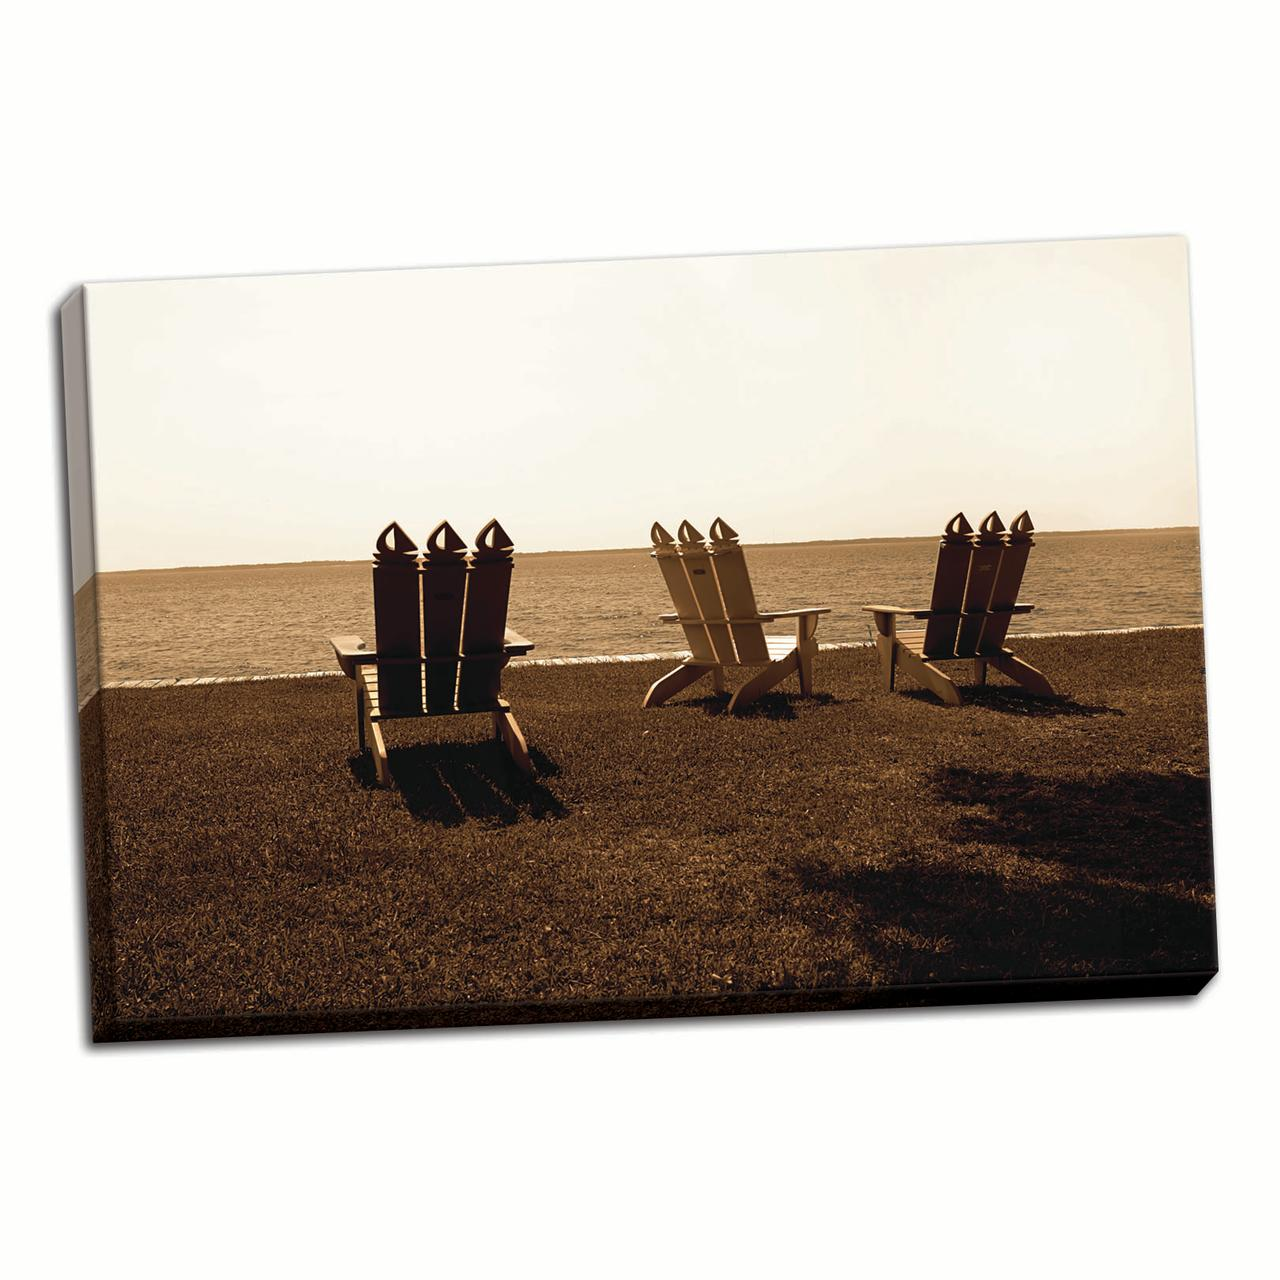 Adirondack Chairs II, Fine Art Photograph By: Alan Hausenflock; One 36x24in Fine Art Paper Giclee Print by Gango Home Décor